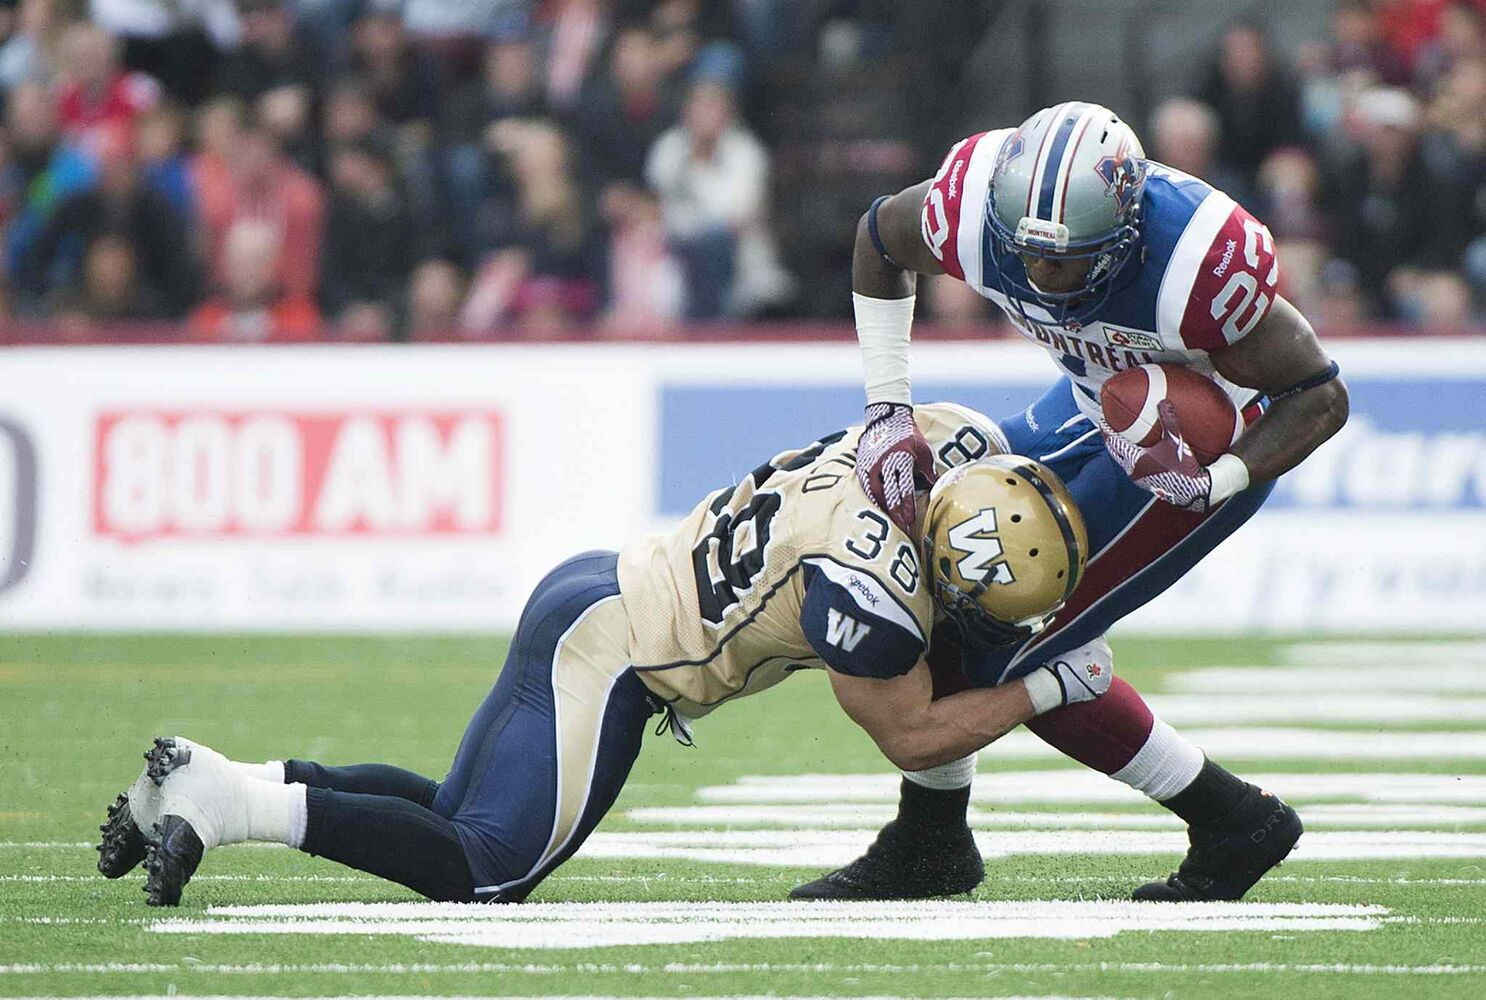 Winnipeg Blue Bombers' Ian Wild, left, tackles Montreal Alouettes' Jerome Messam during second half CFL football action in Montreal Monday. (Graham Hughes / The Canadian Press)